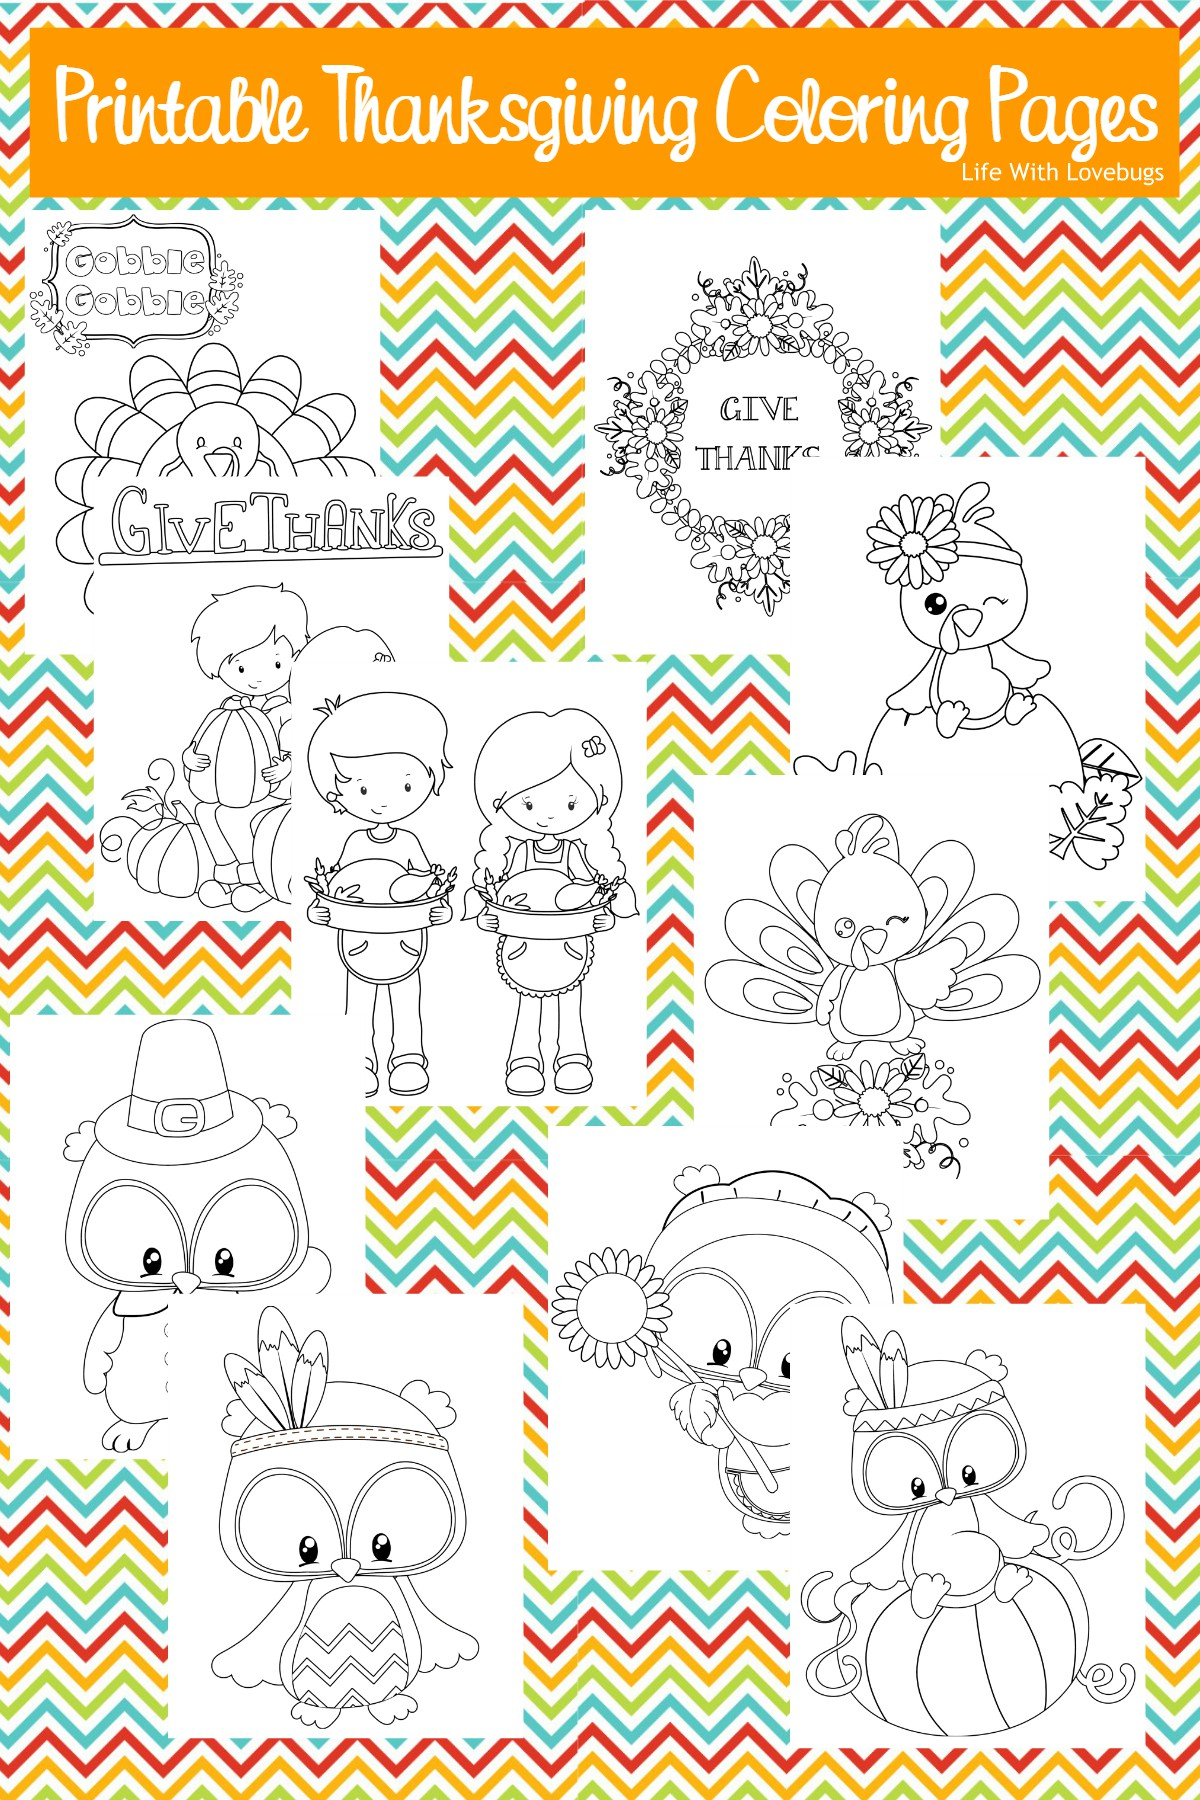 Thanksgiving Printable Coloring Pages For Kids - Life With Lovebugs